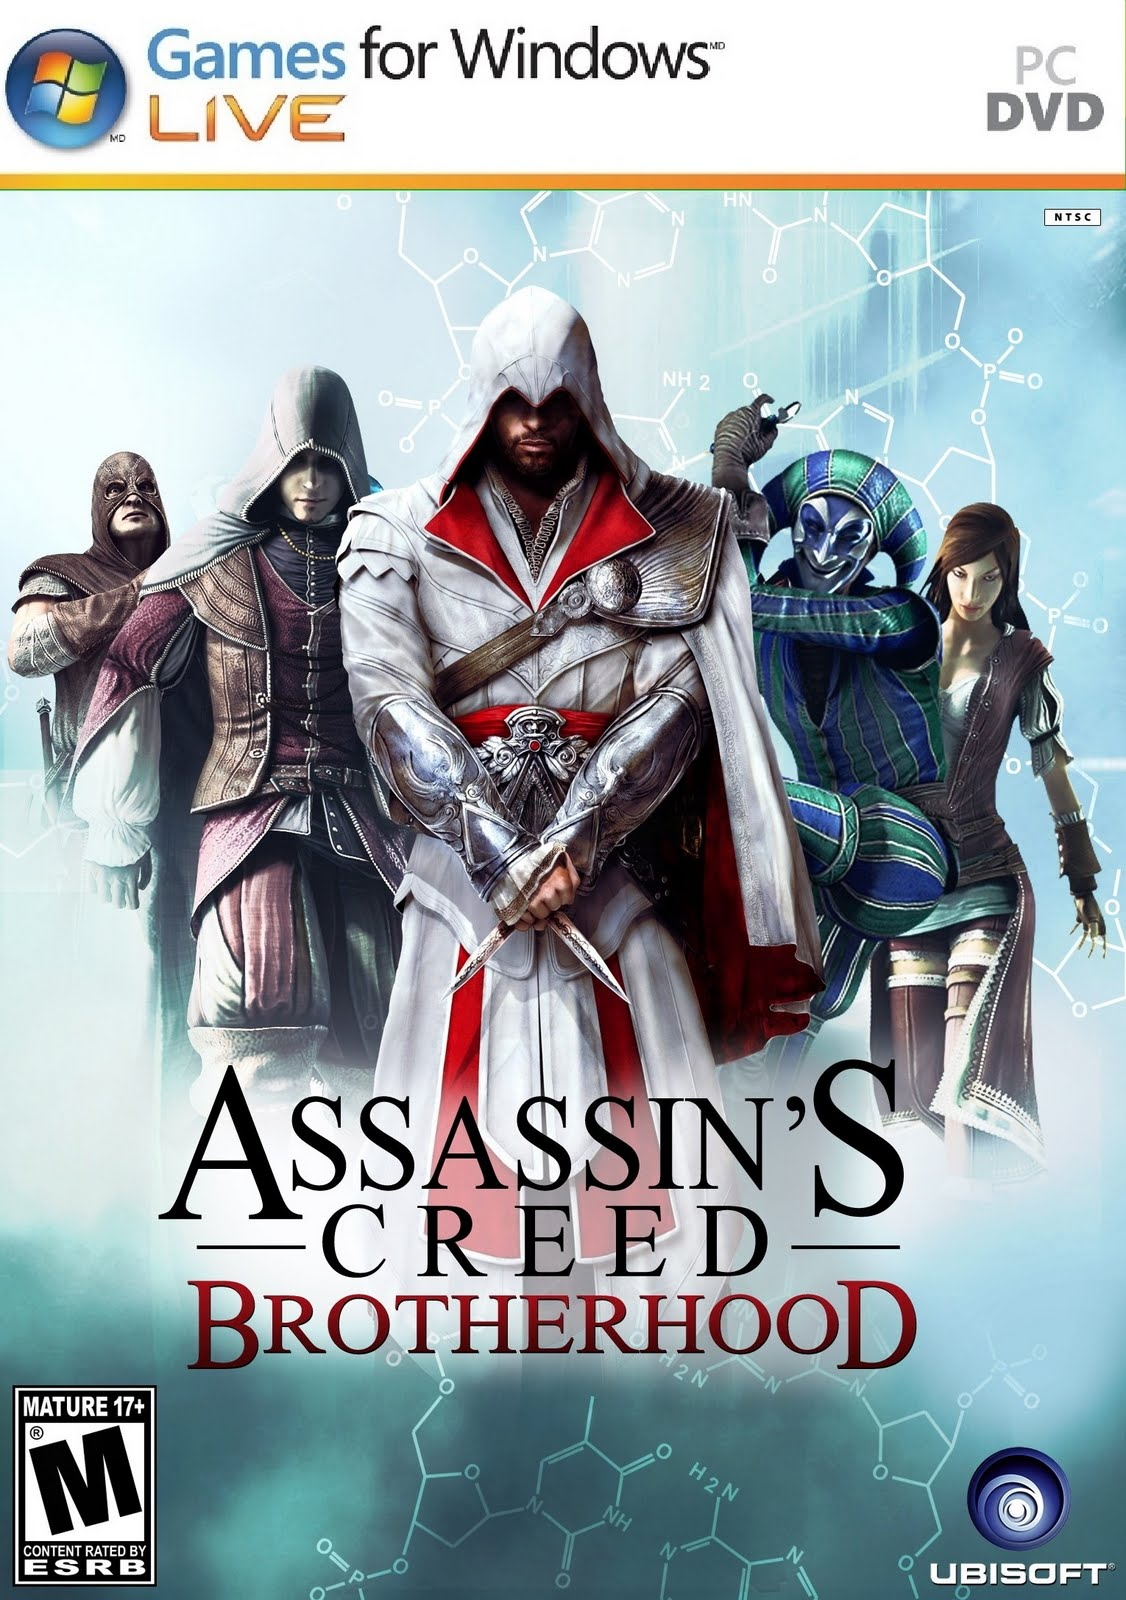 Choose your games: Assassin's Creed Brotherhood